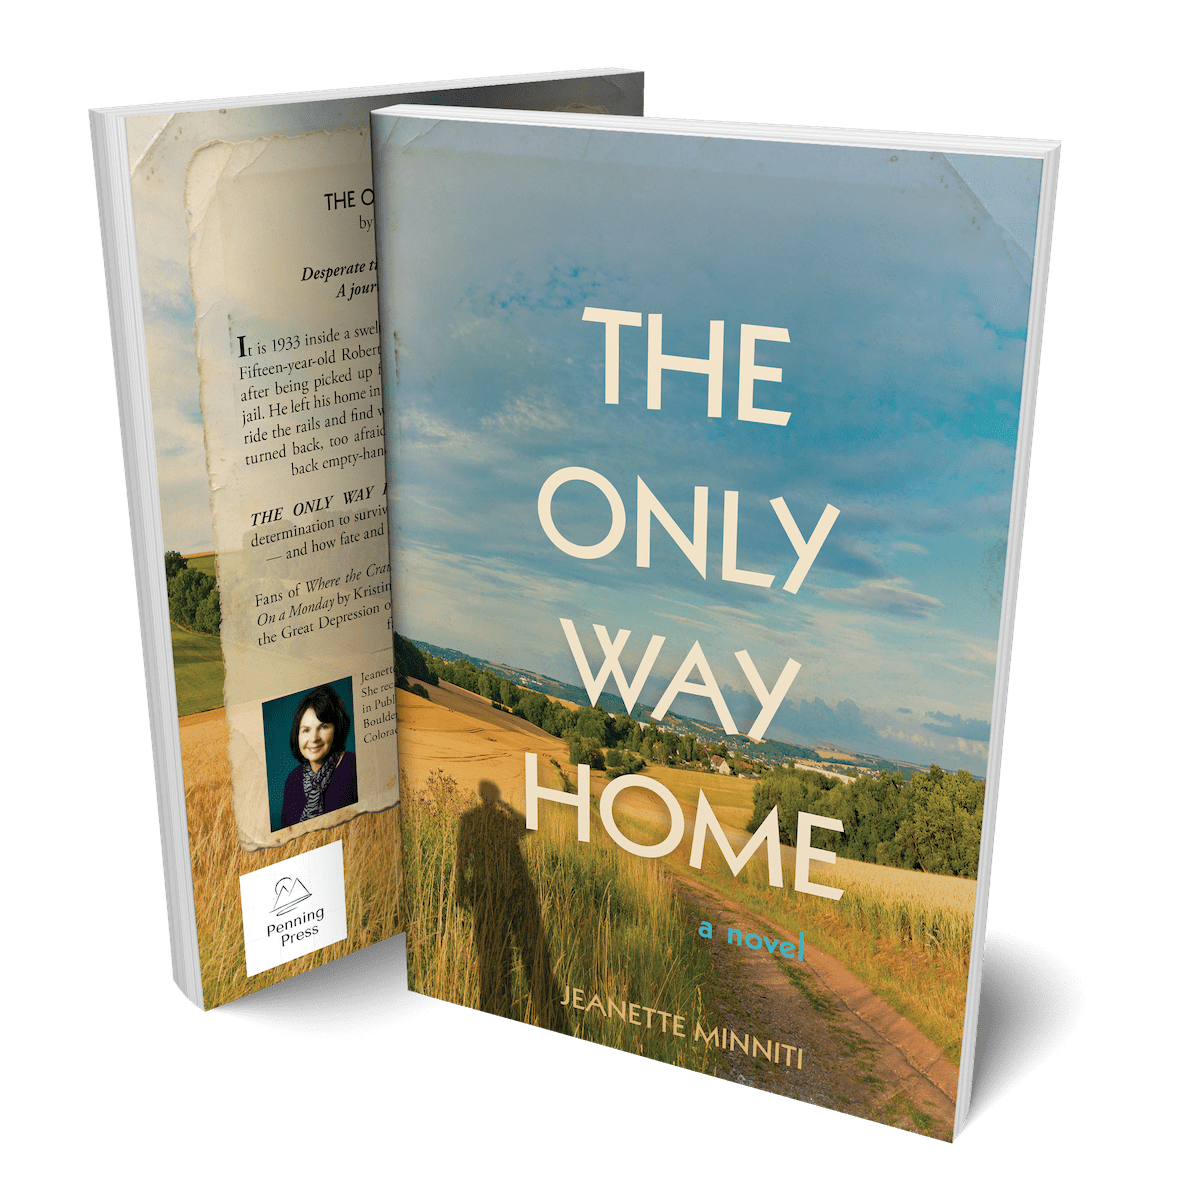 Enter the THE ONLY WAY HOME Book Tour Giveaway